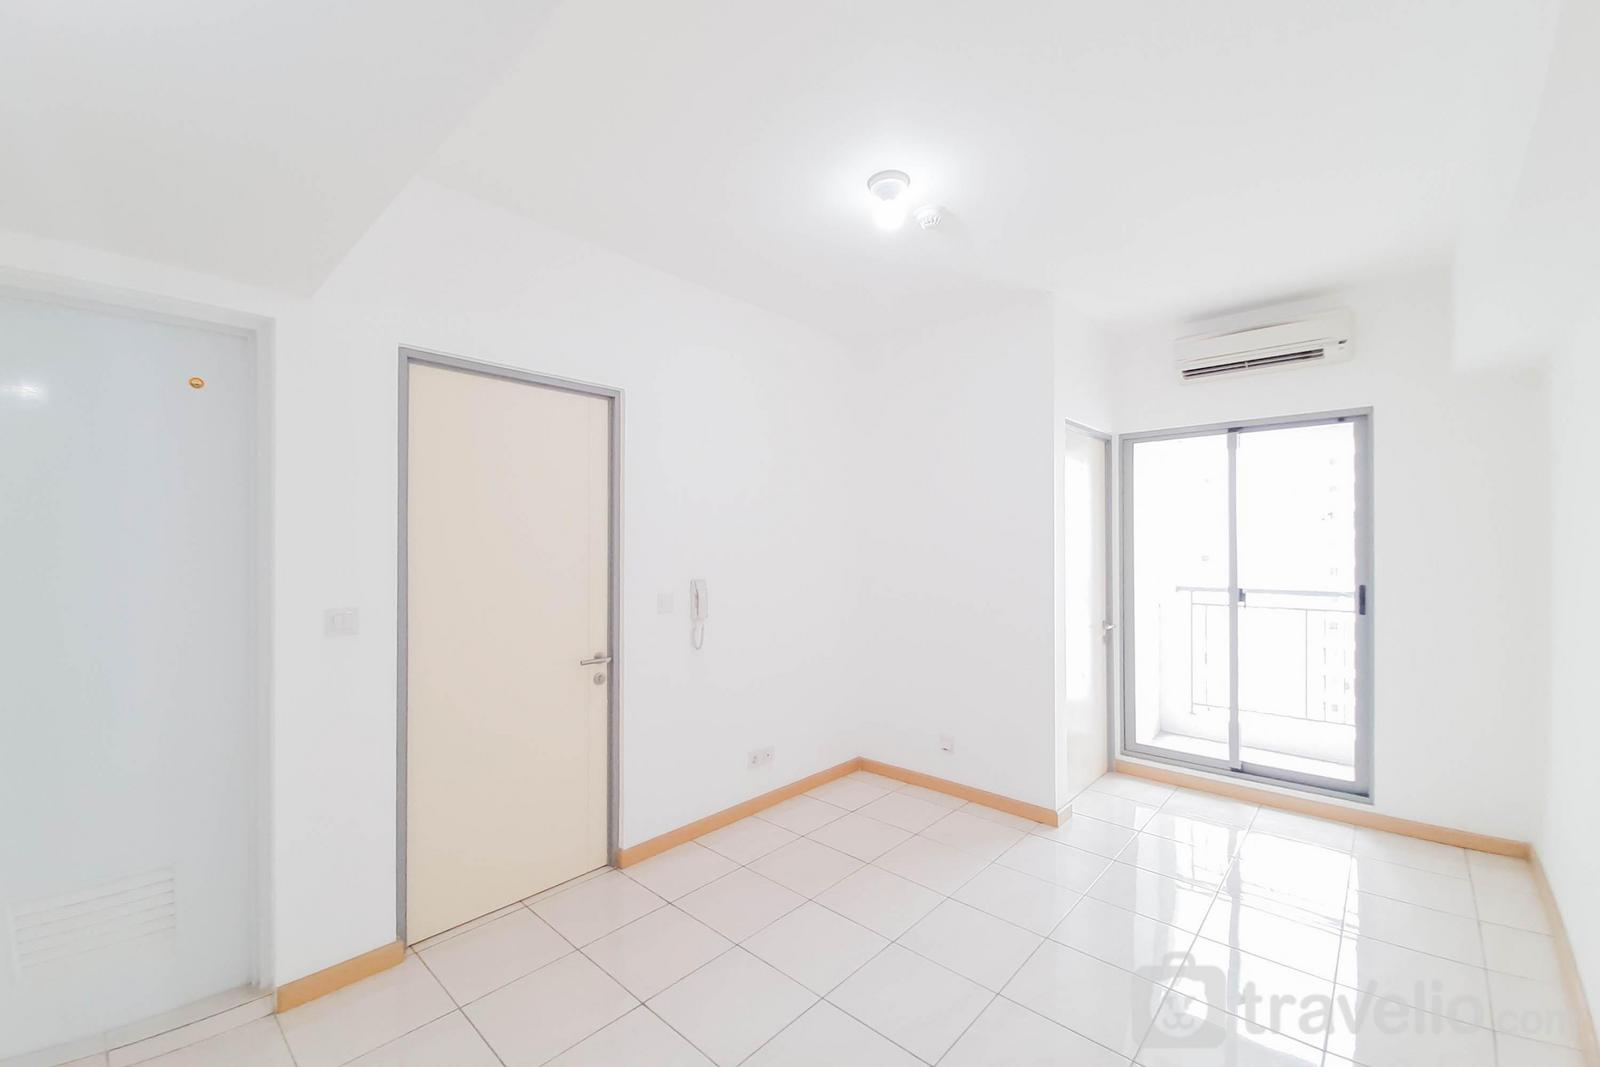 Apartemen M-Town Residence - Unfurnished 2BR with AC at 27th Floor M-Town Residence By Travelio